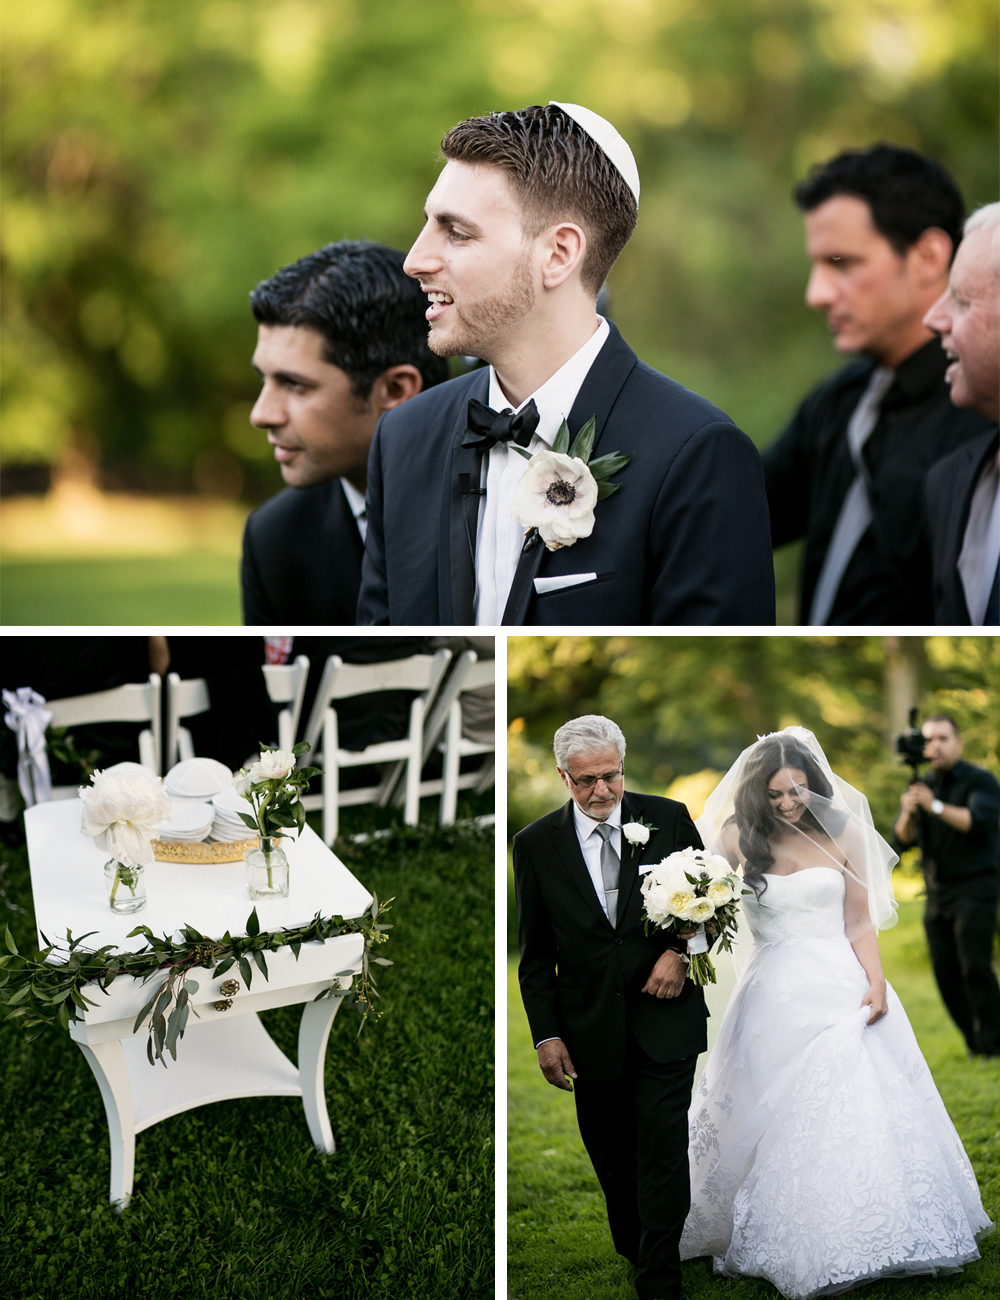 Jewish Greek Wedding at Brooklyn Botanical Garden New York aisle